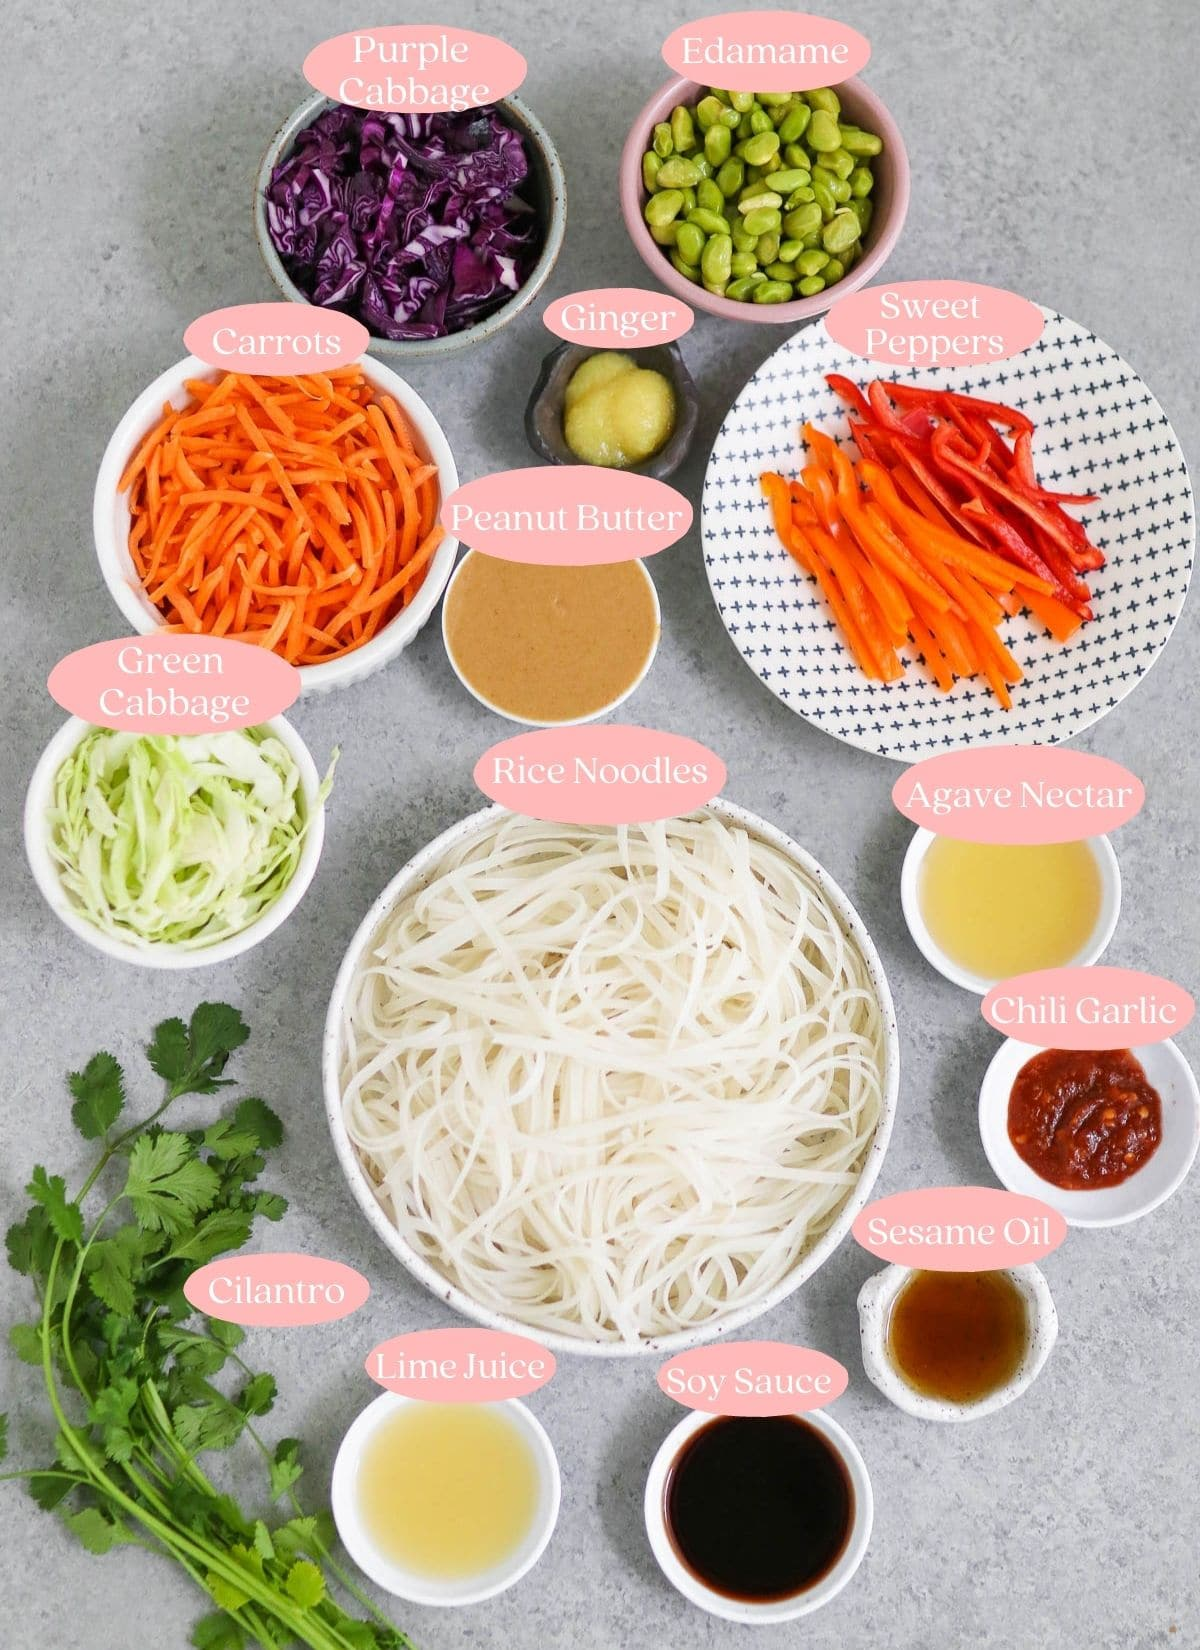 Photo of ingredients with pink labels